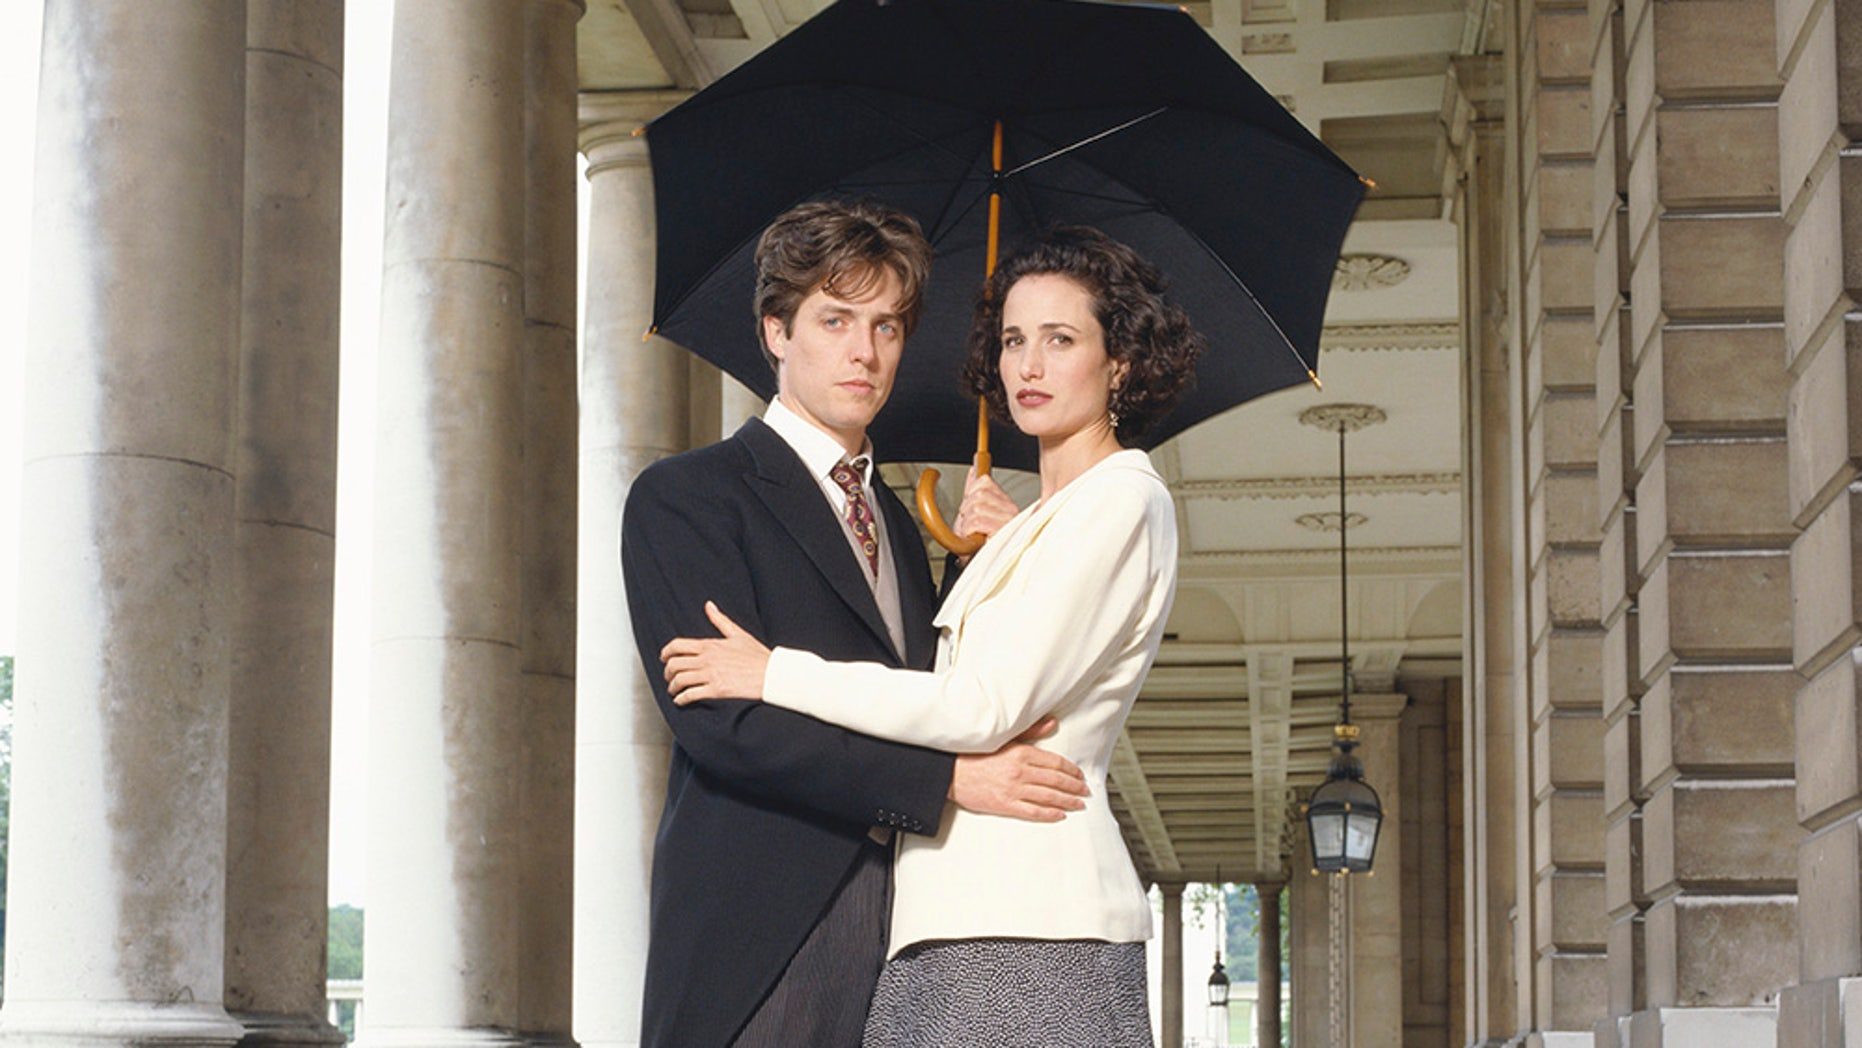 """Actor Hugh Grant and actress Andie MacDowell posing as their characters from Richard Curtis' 1994 comedy """"Four Weddings and a Funeral."""""""